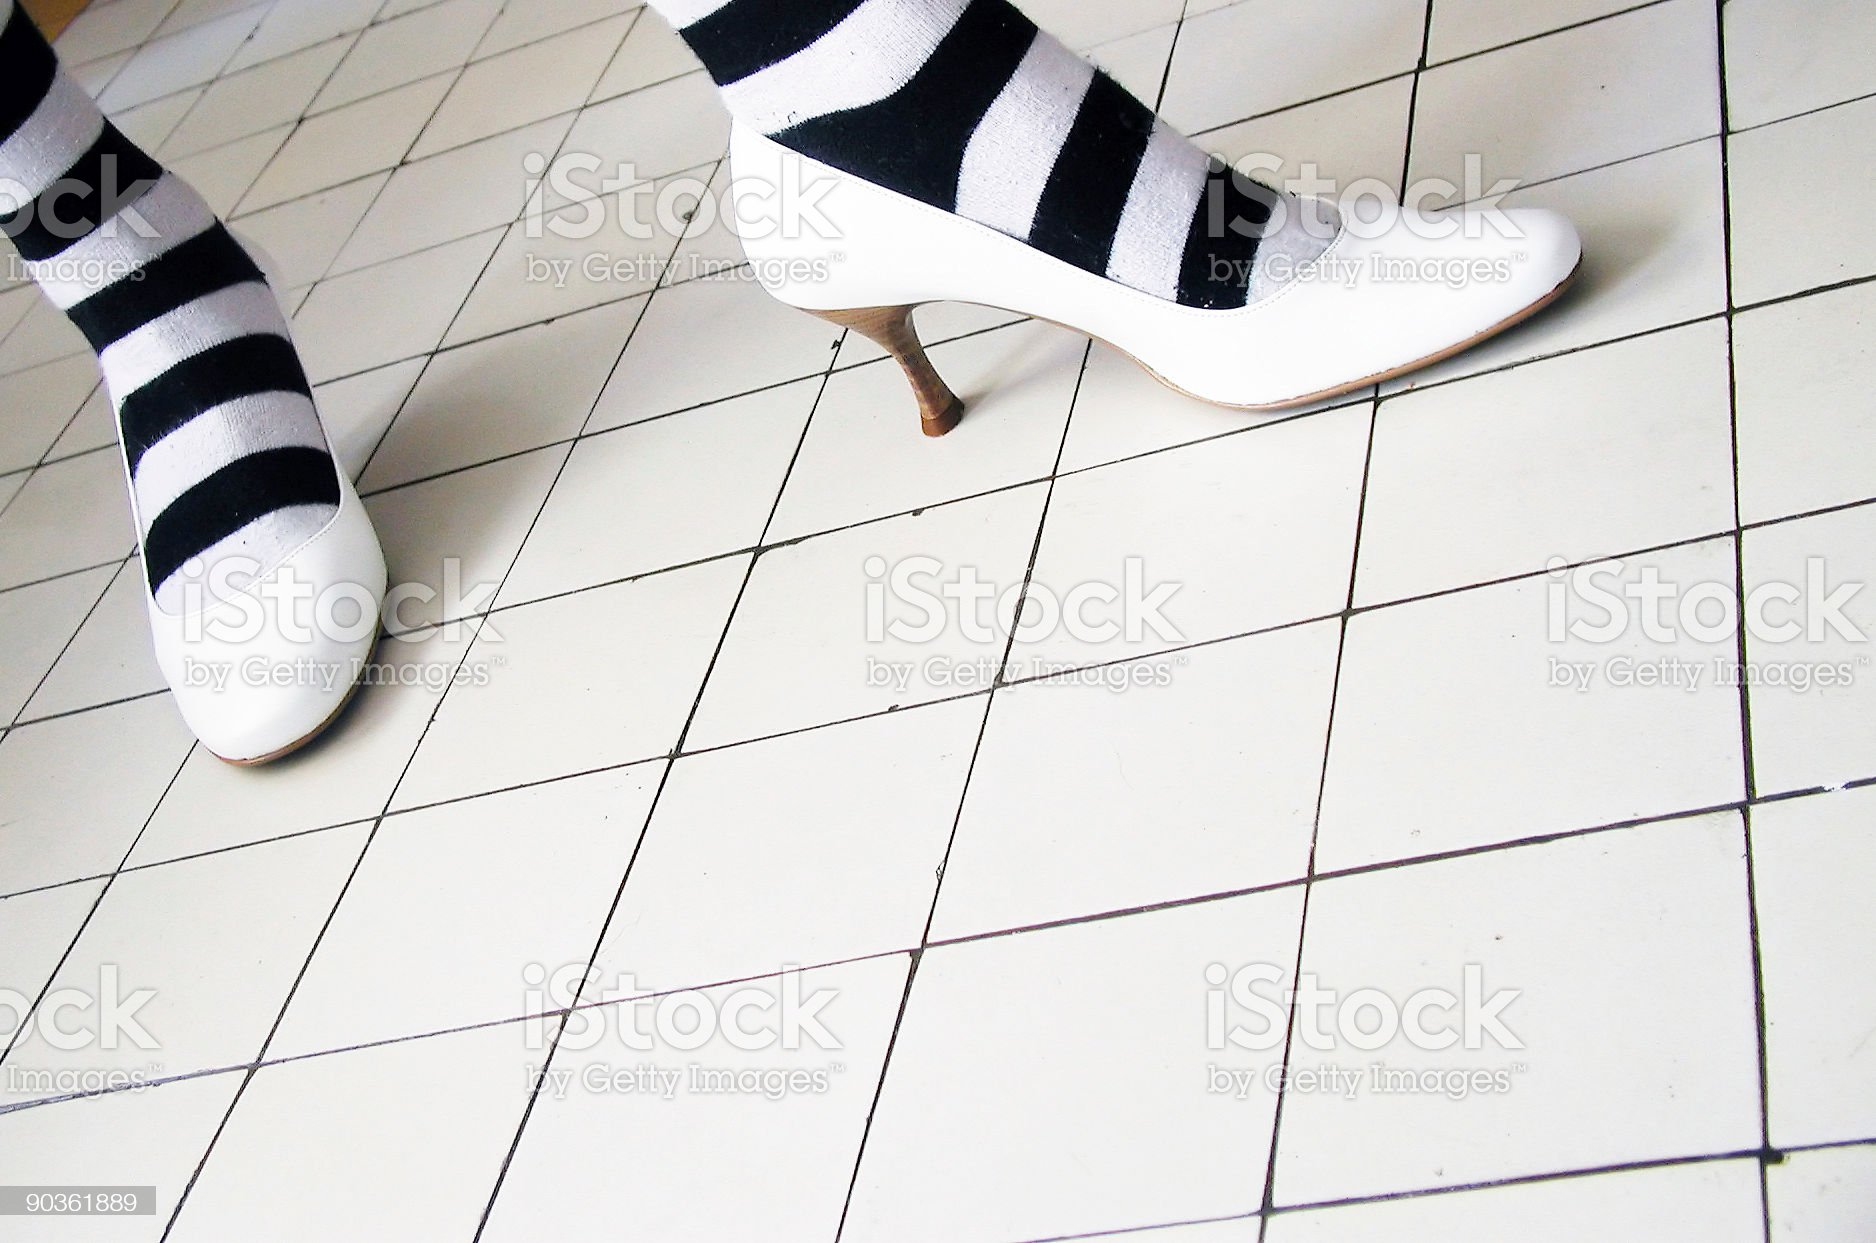 White high heel shoes with unsuitable socks royalty-free stock photo